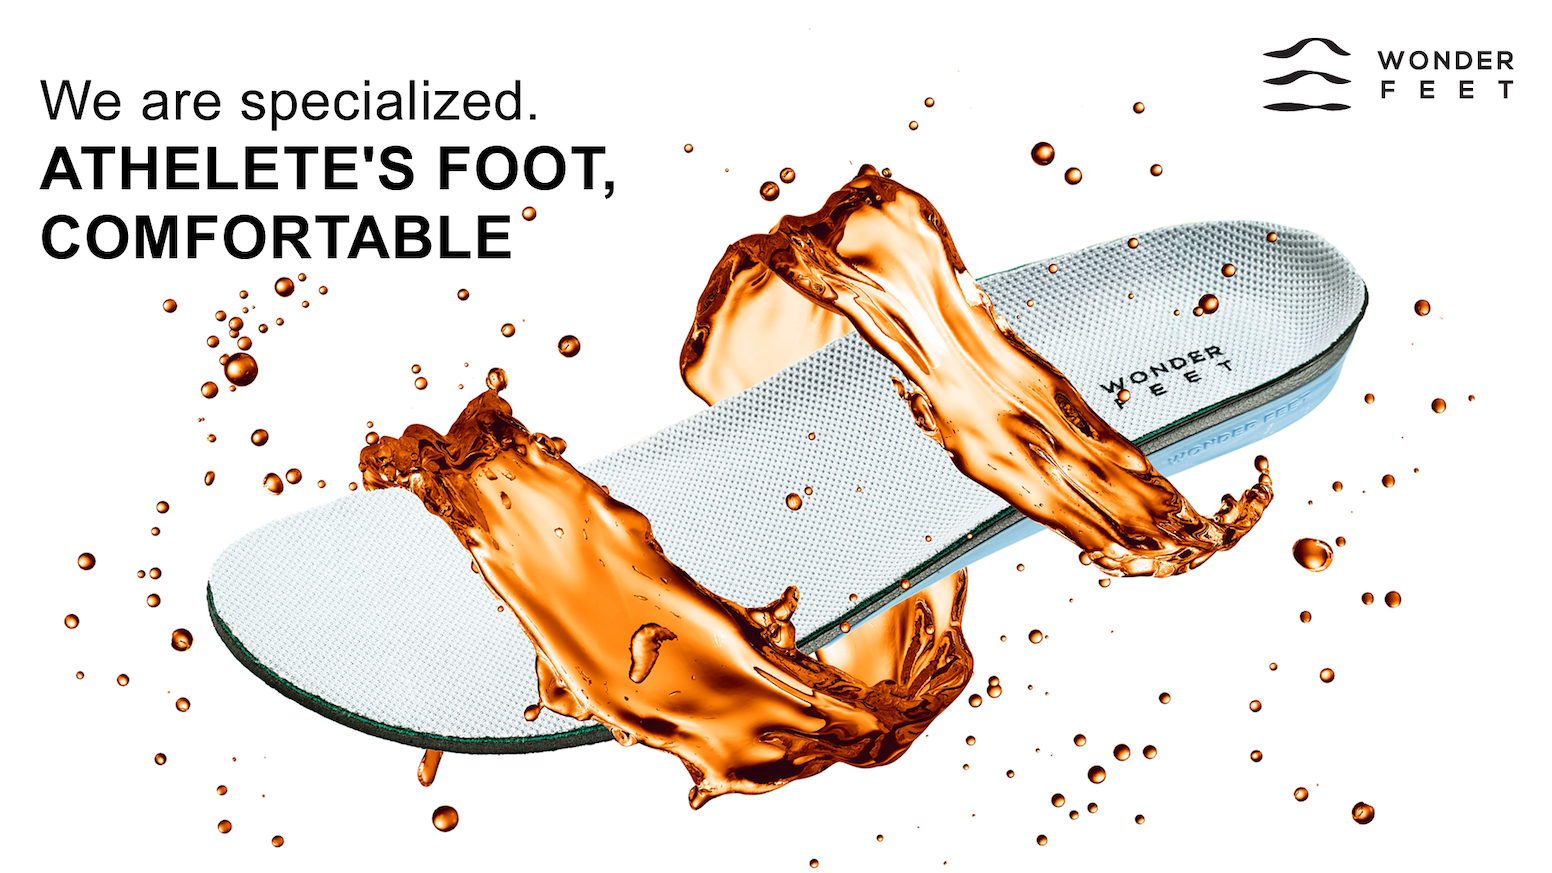 The Wonder feet Insole has an Antibacterial copper fabric insole for excellent control of athlete's foot and foot odor.